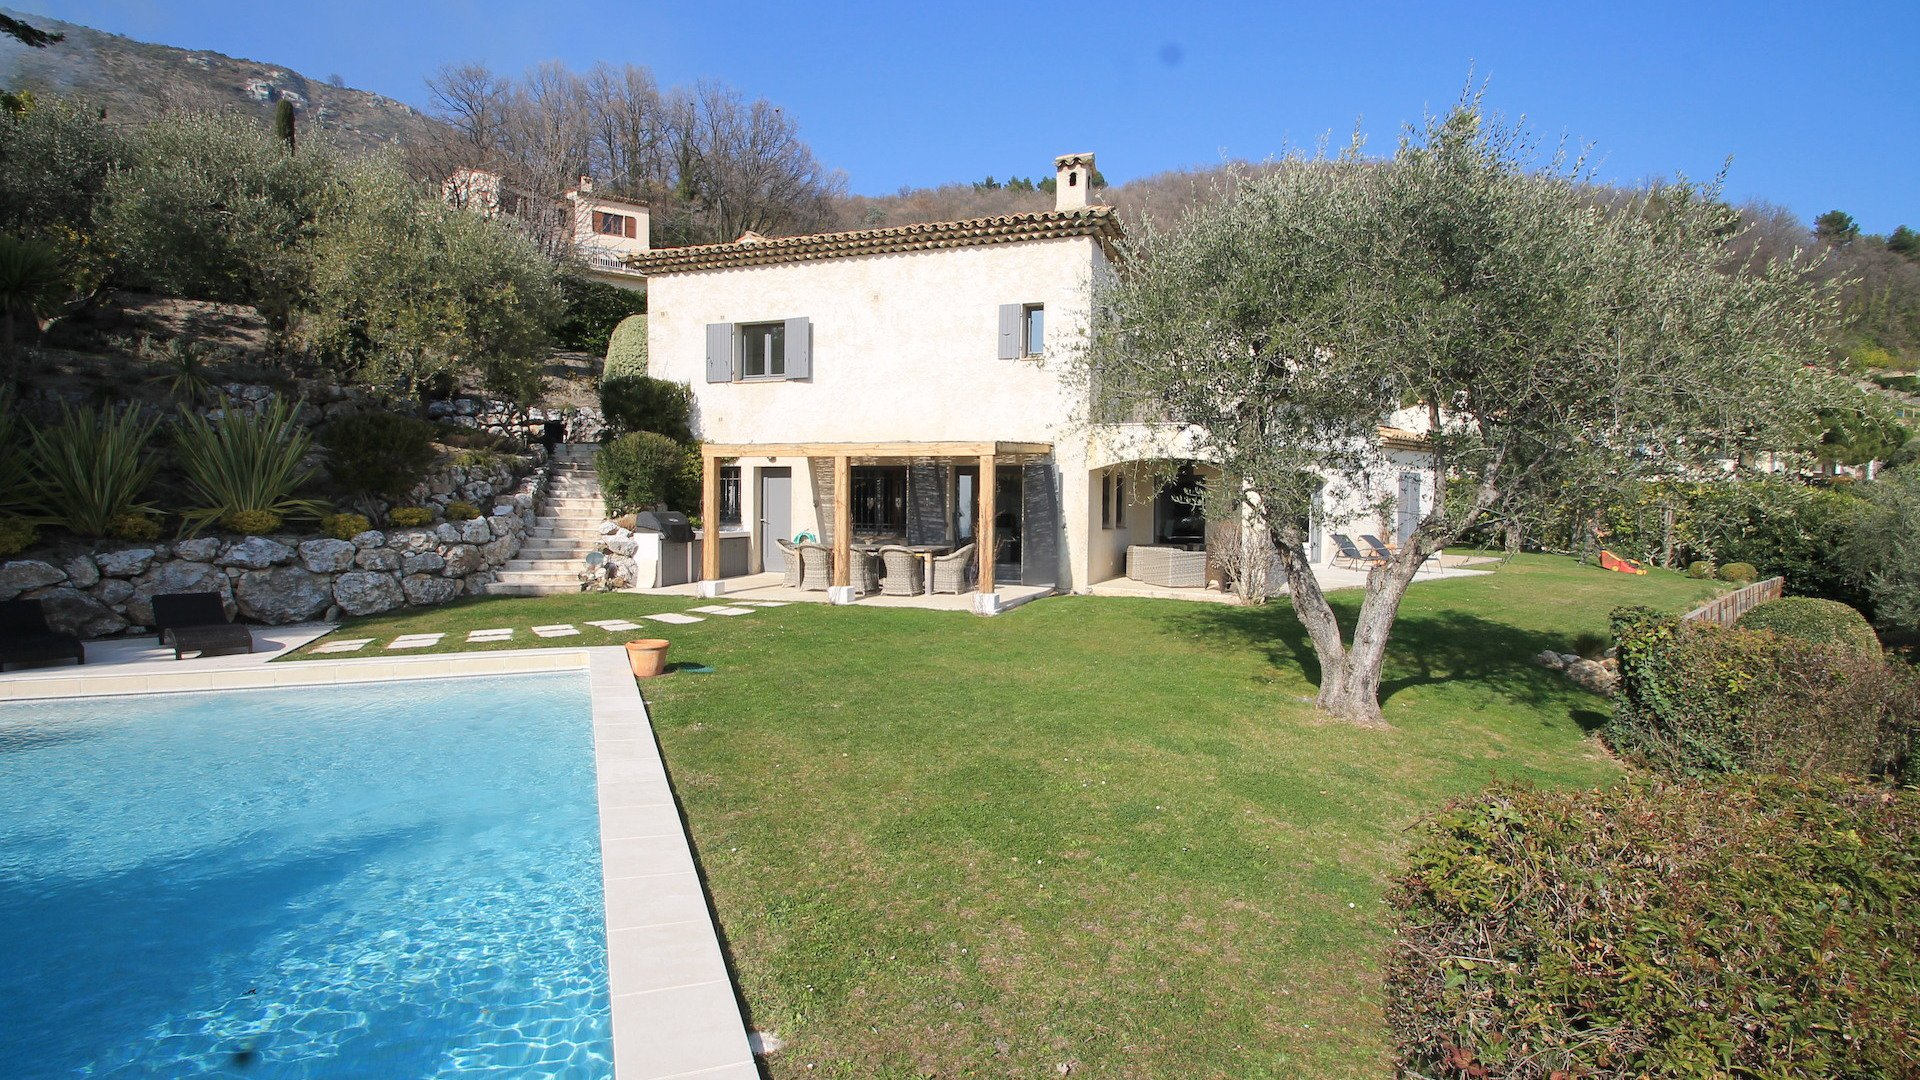 Villa In Tourrettes Sur Loup With Stunning Views